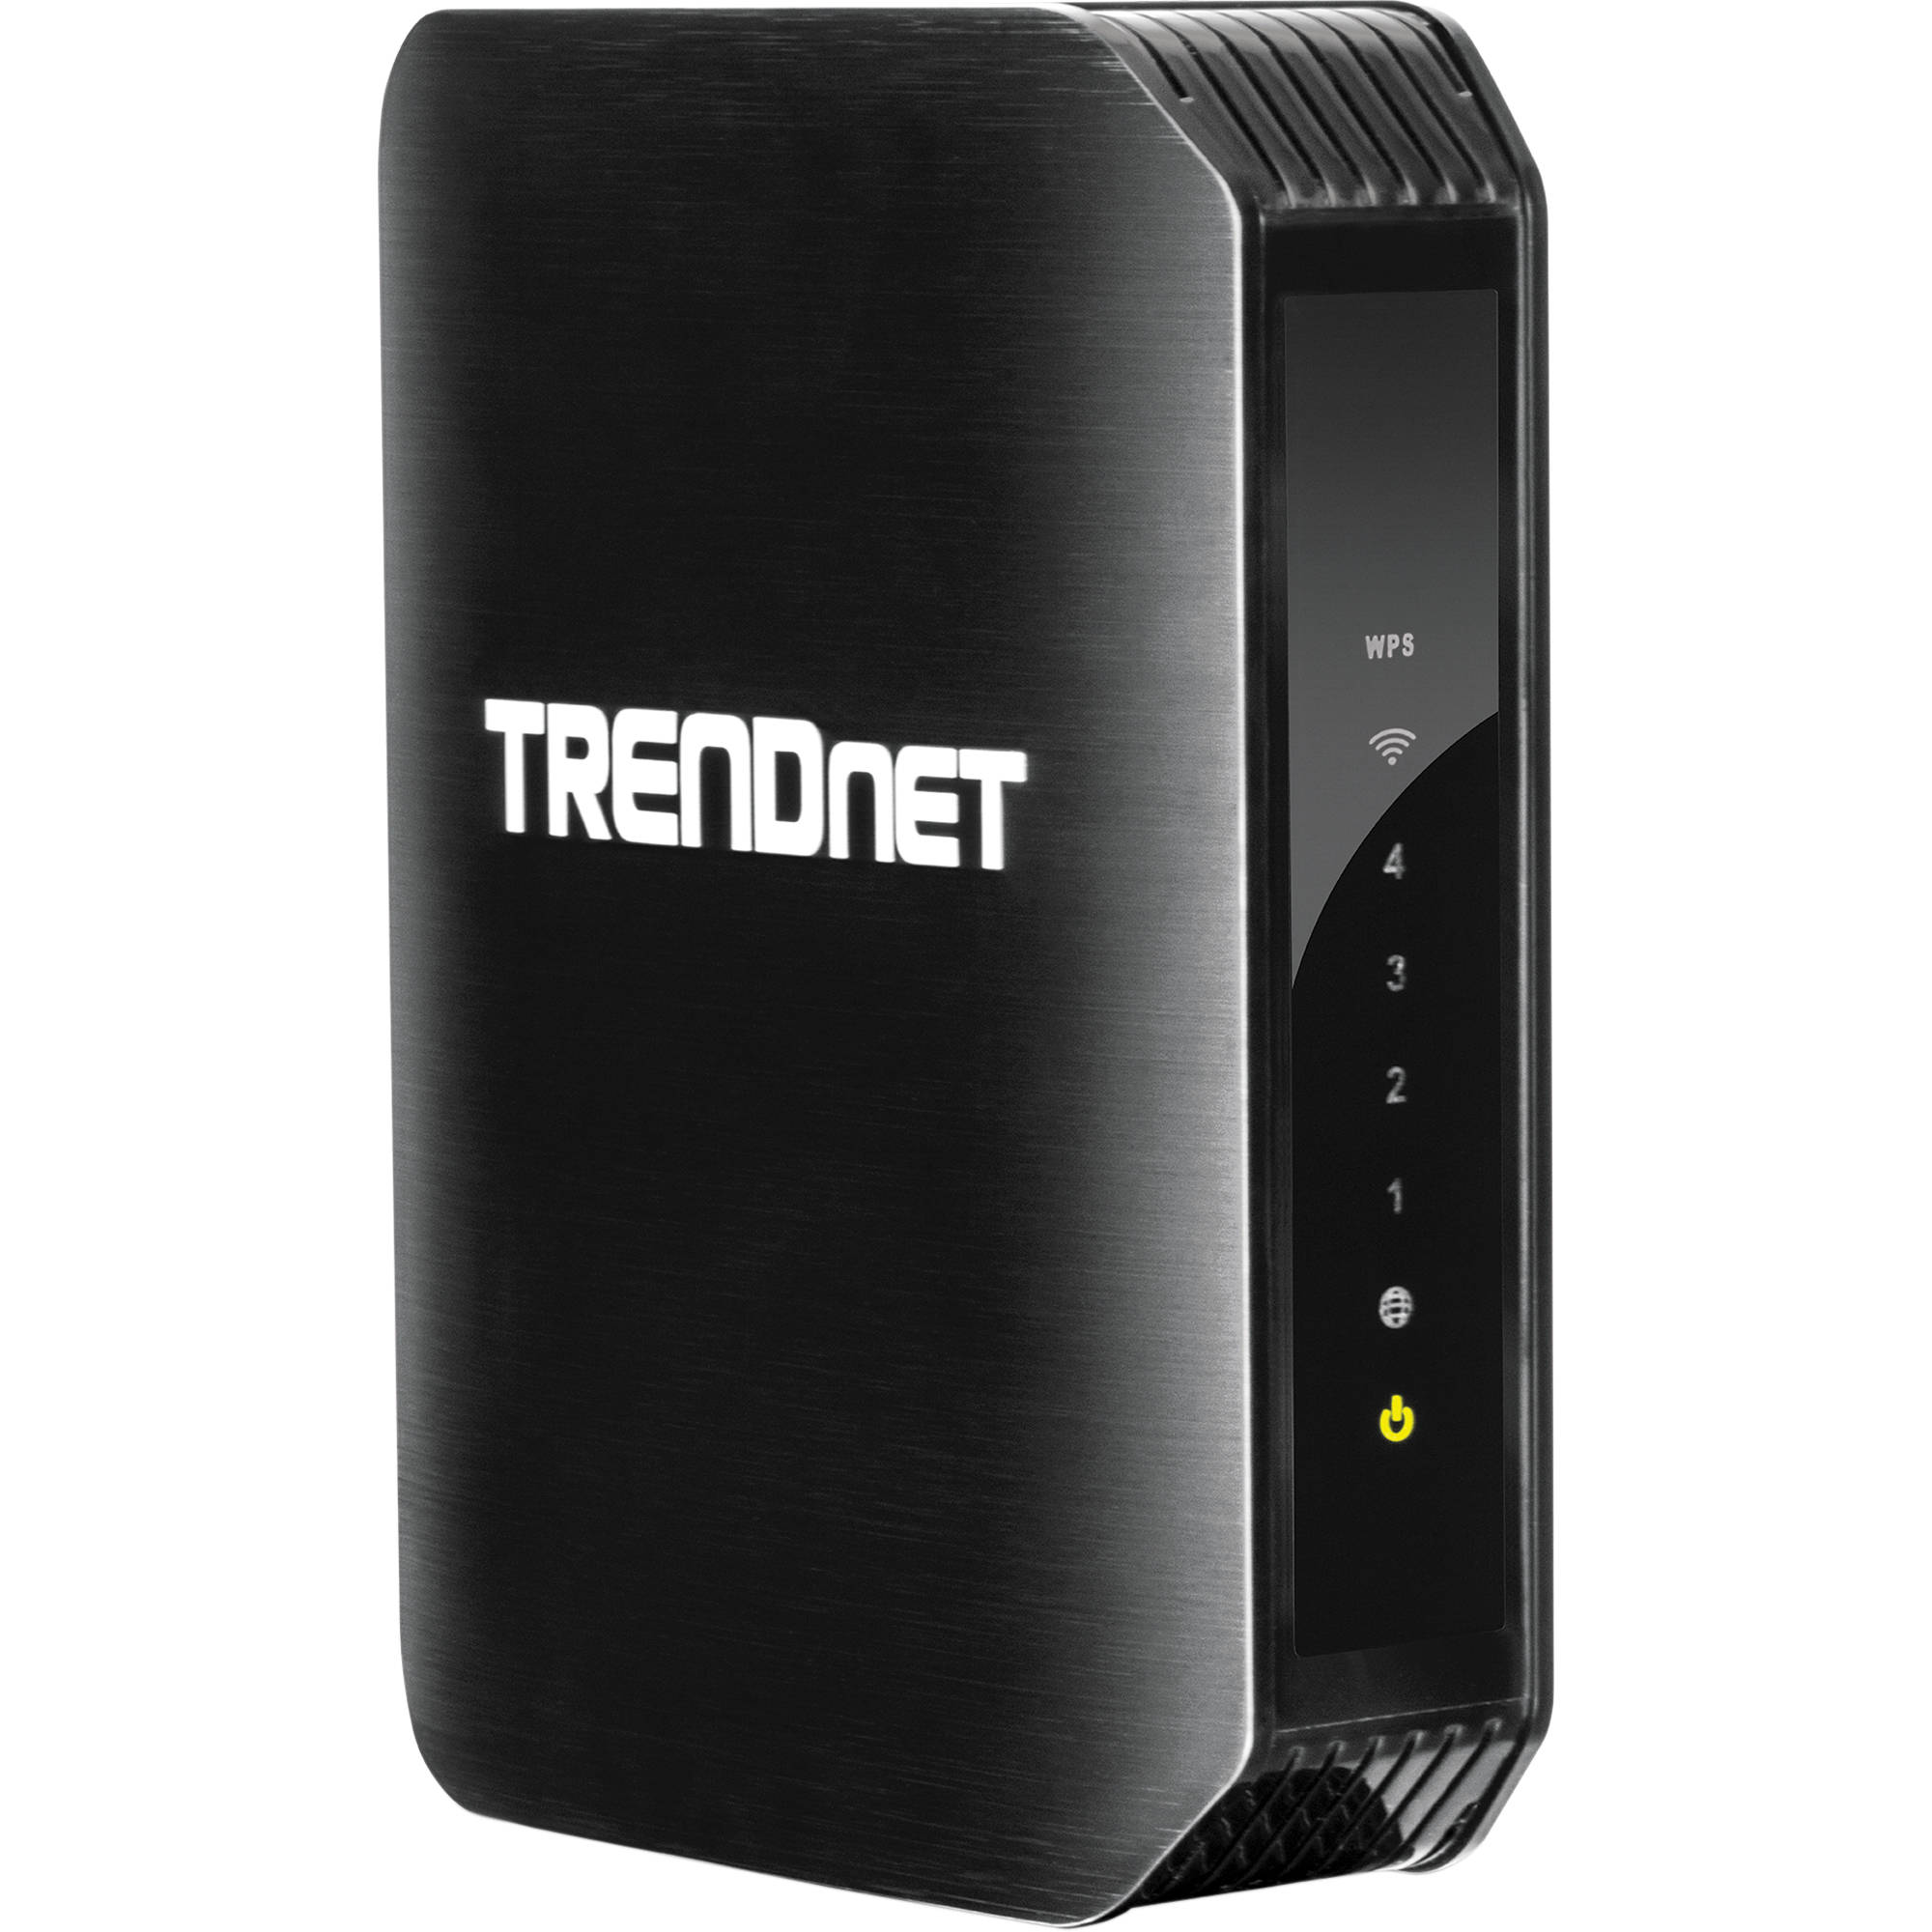 n300 wifi gigabit router review